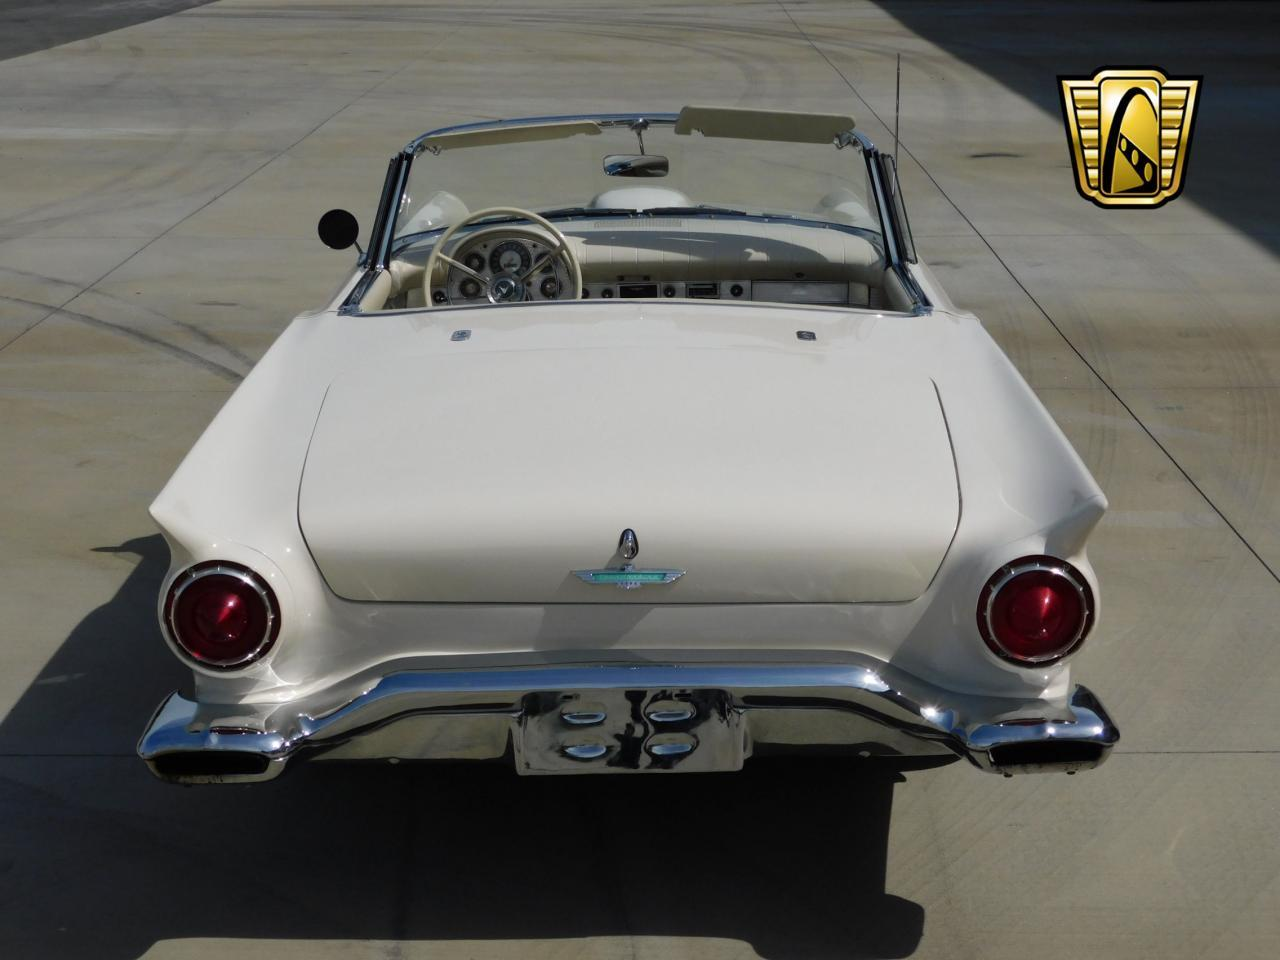 Large Picture of '57 Ford Thunderbird located in Alpharetta Georgia - $51,000.00 Offered by Gateway Classic Cars - Atlanta - L77Y